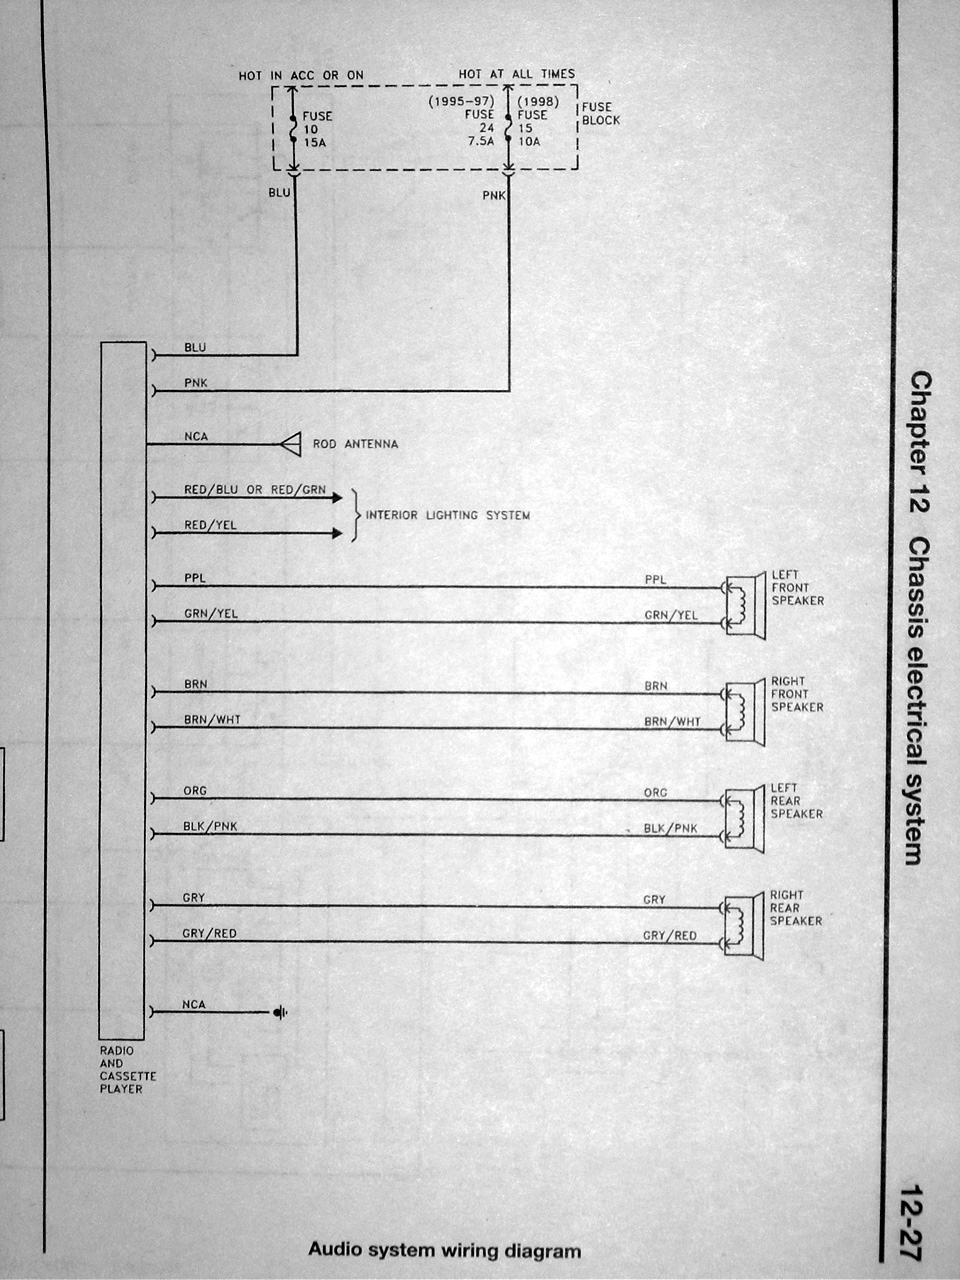 DSC01849 wiring diagram thread *useful info* nissan forum 2006 nissan frontier stereo wiring diagram at bayanpartner.co